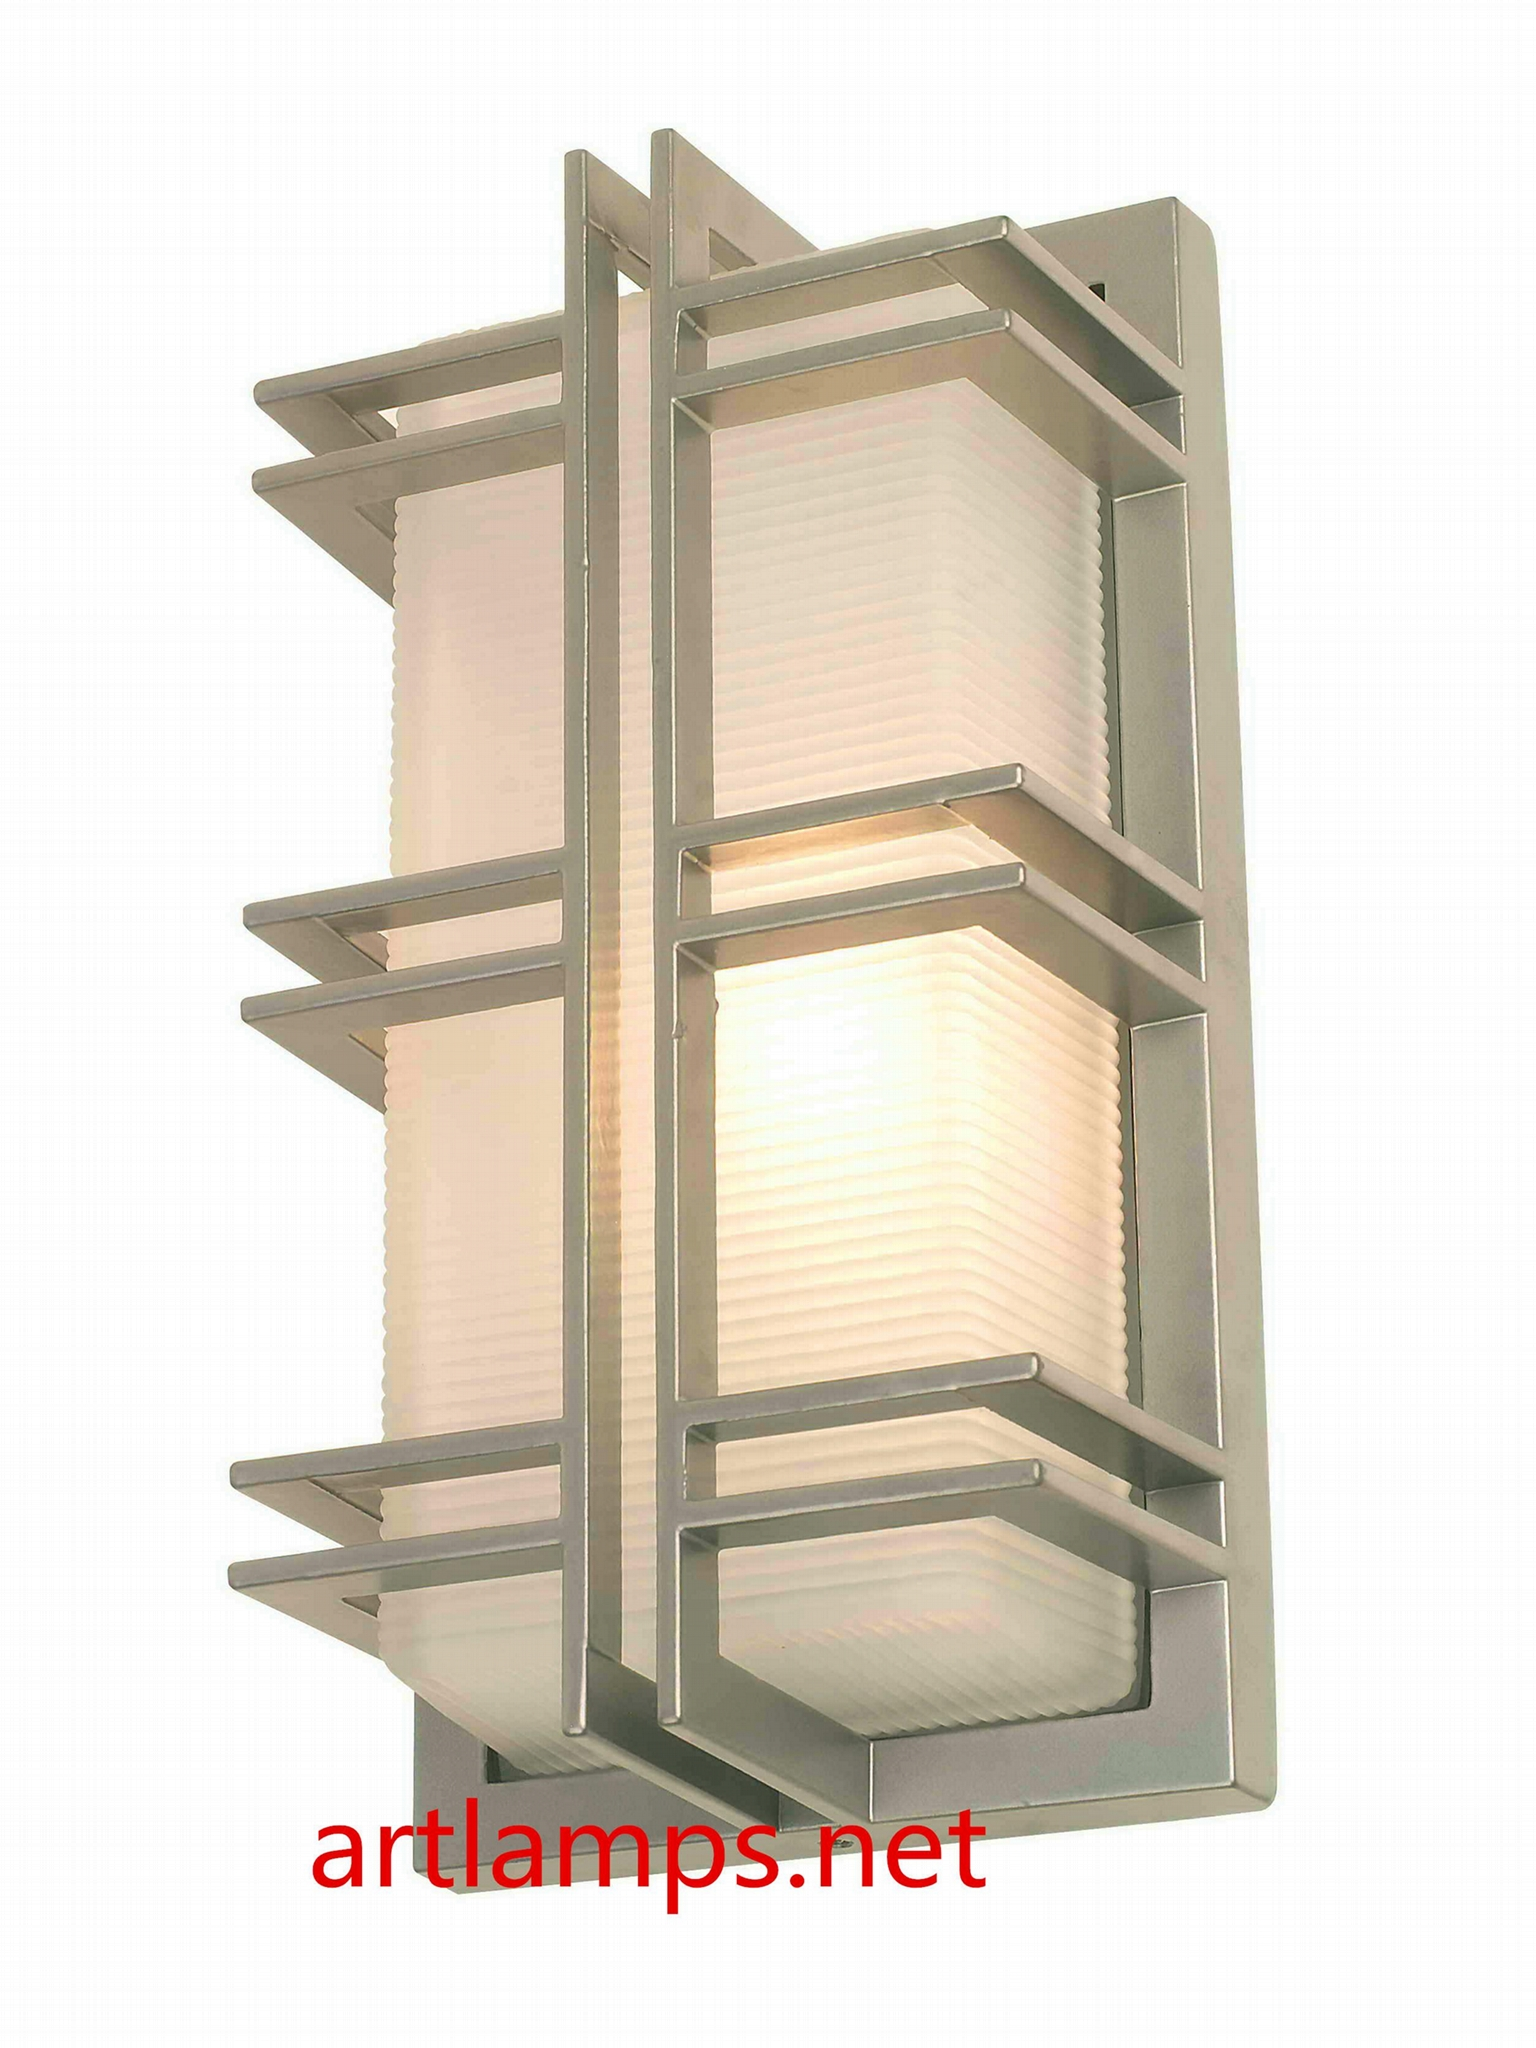 Outdoor LED Wall Sconce lamp LED Waterproof Stainless Steel Wall Lamp FD-HW5008 1